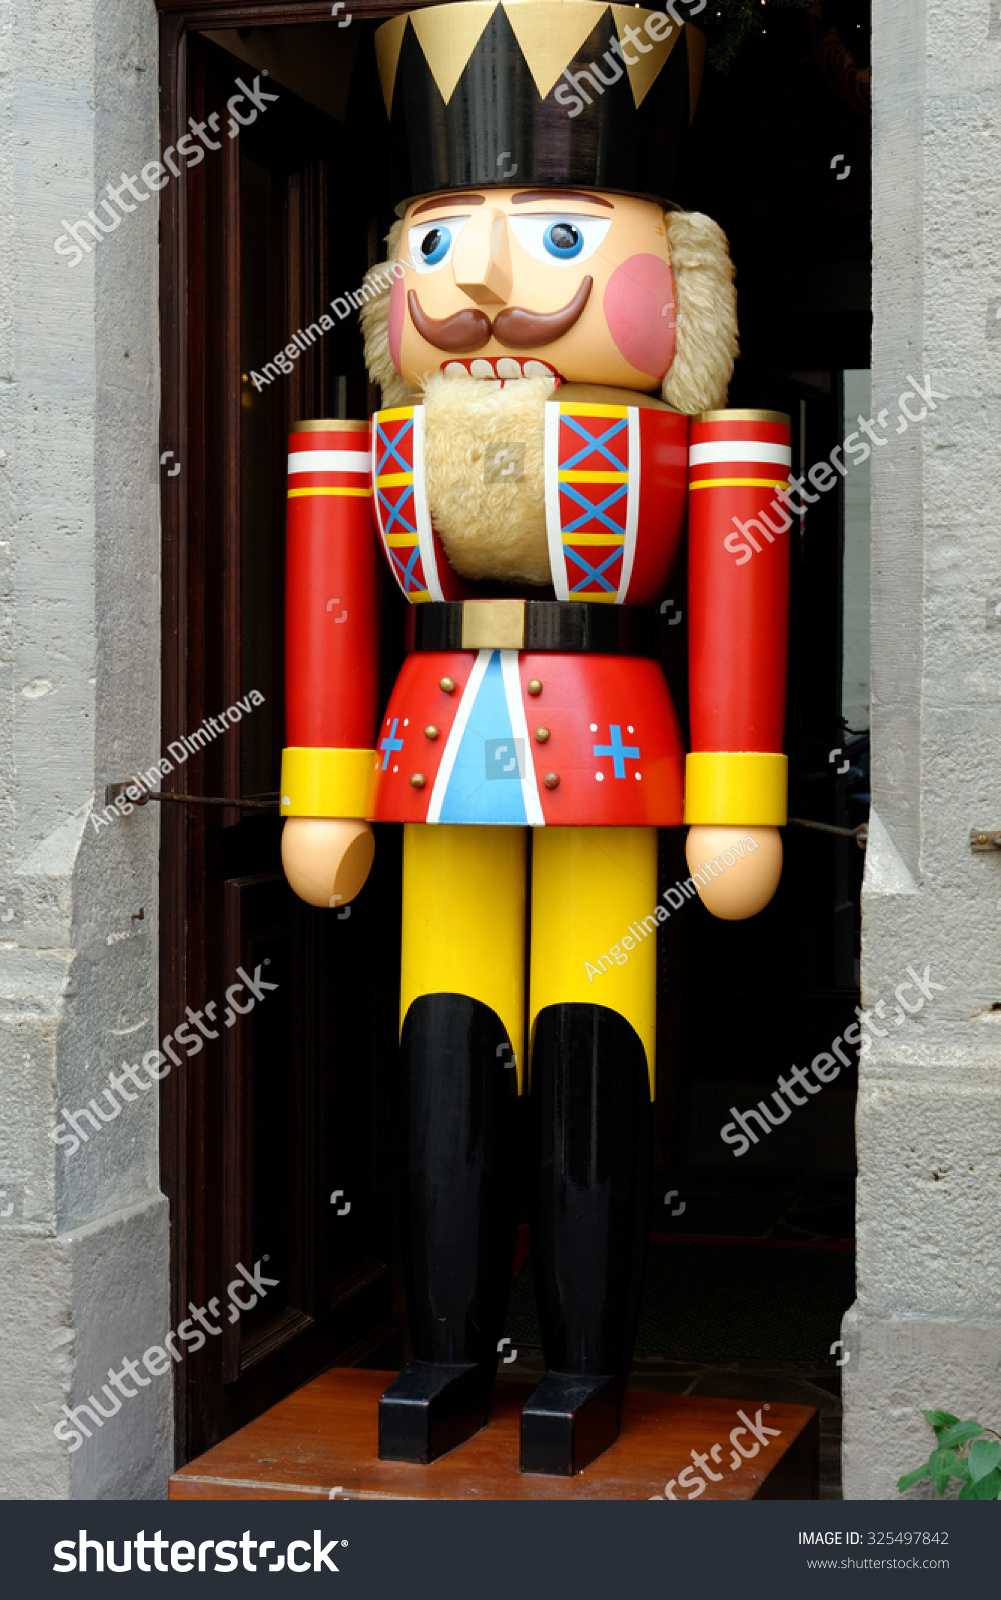 a large traditional toy soldier figurine in rothenburg ob der tauber germany it is - Large Toy Soldier Christmas Decoration